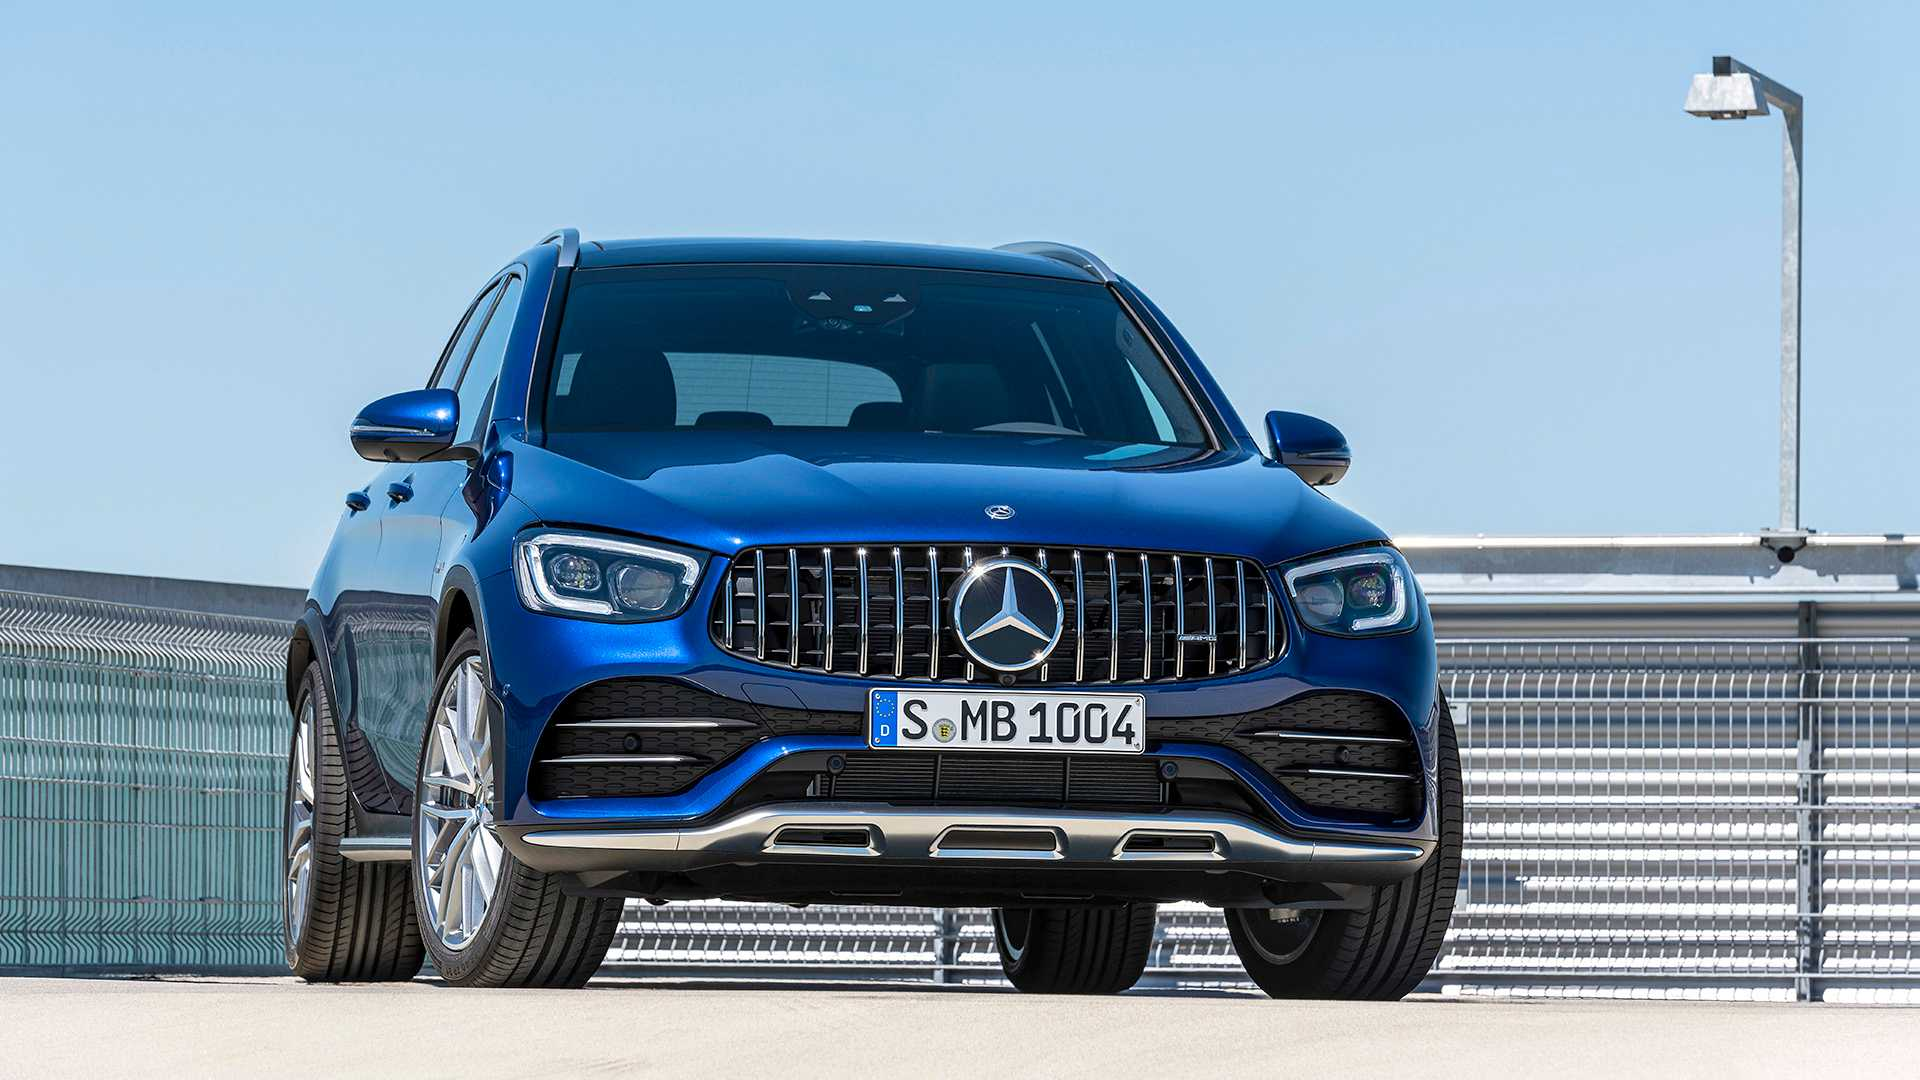 We have all heard rumors that Mercedes wanted to drop the youngest AMG from the GLC family altogether. Luckily for us, the company just came out with the facelifted GLC 43, proving that the agile crossover SUV isn't going anywhere yet.